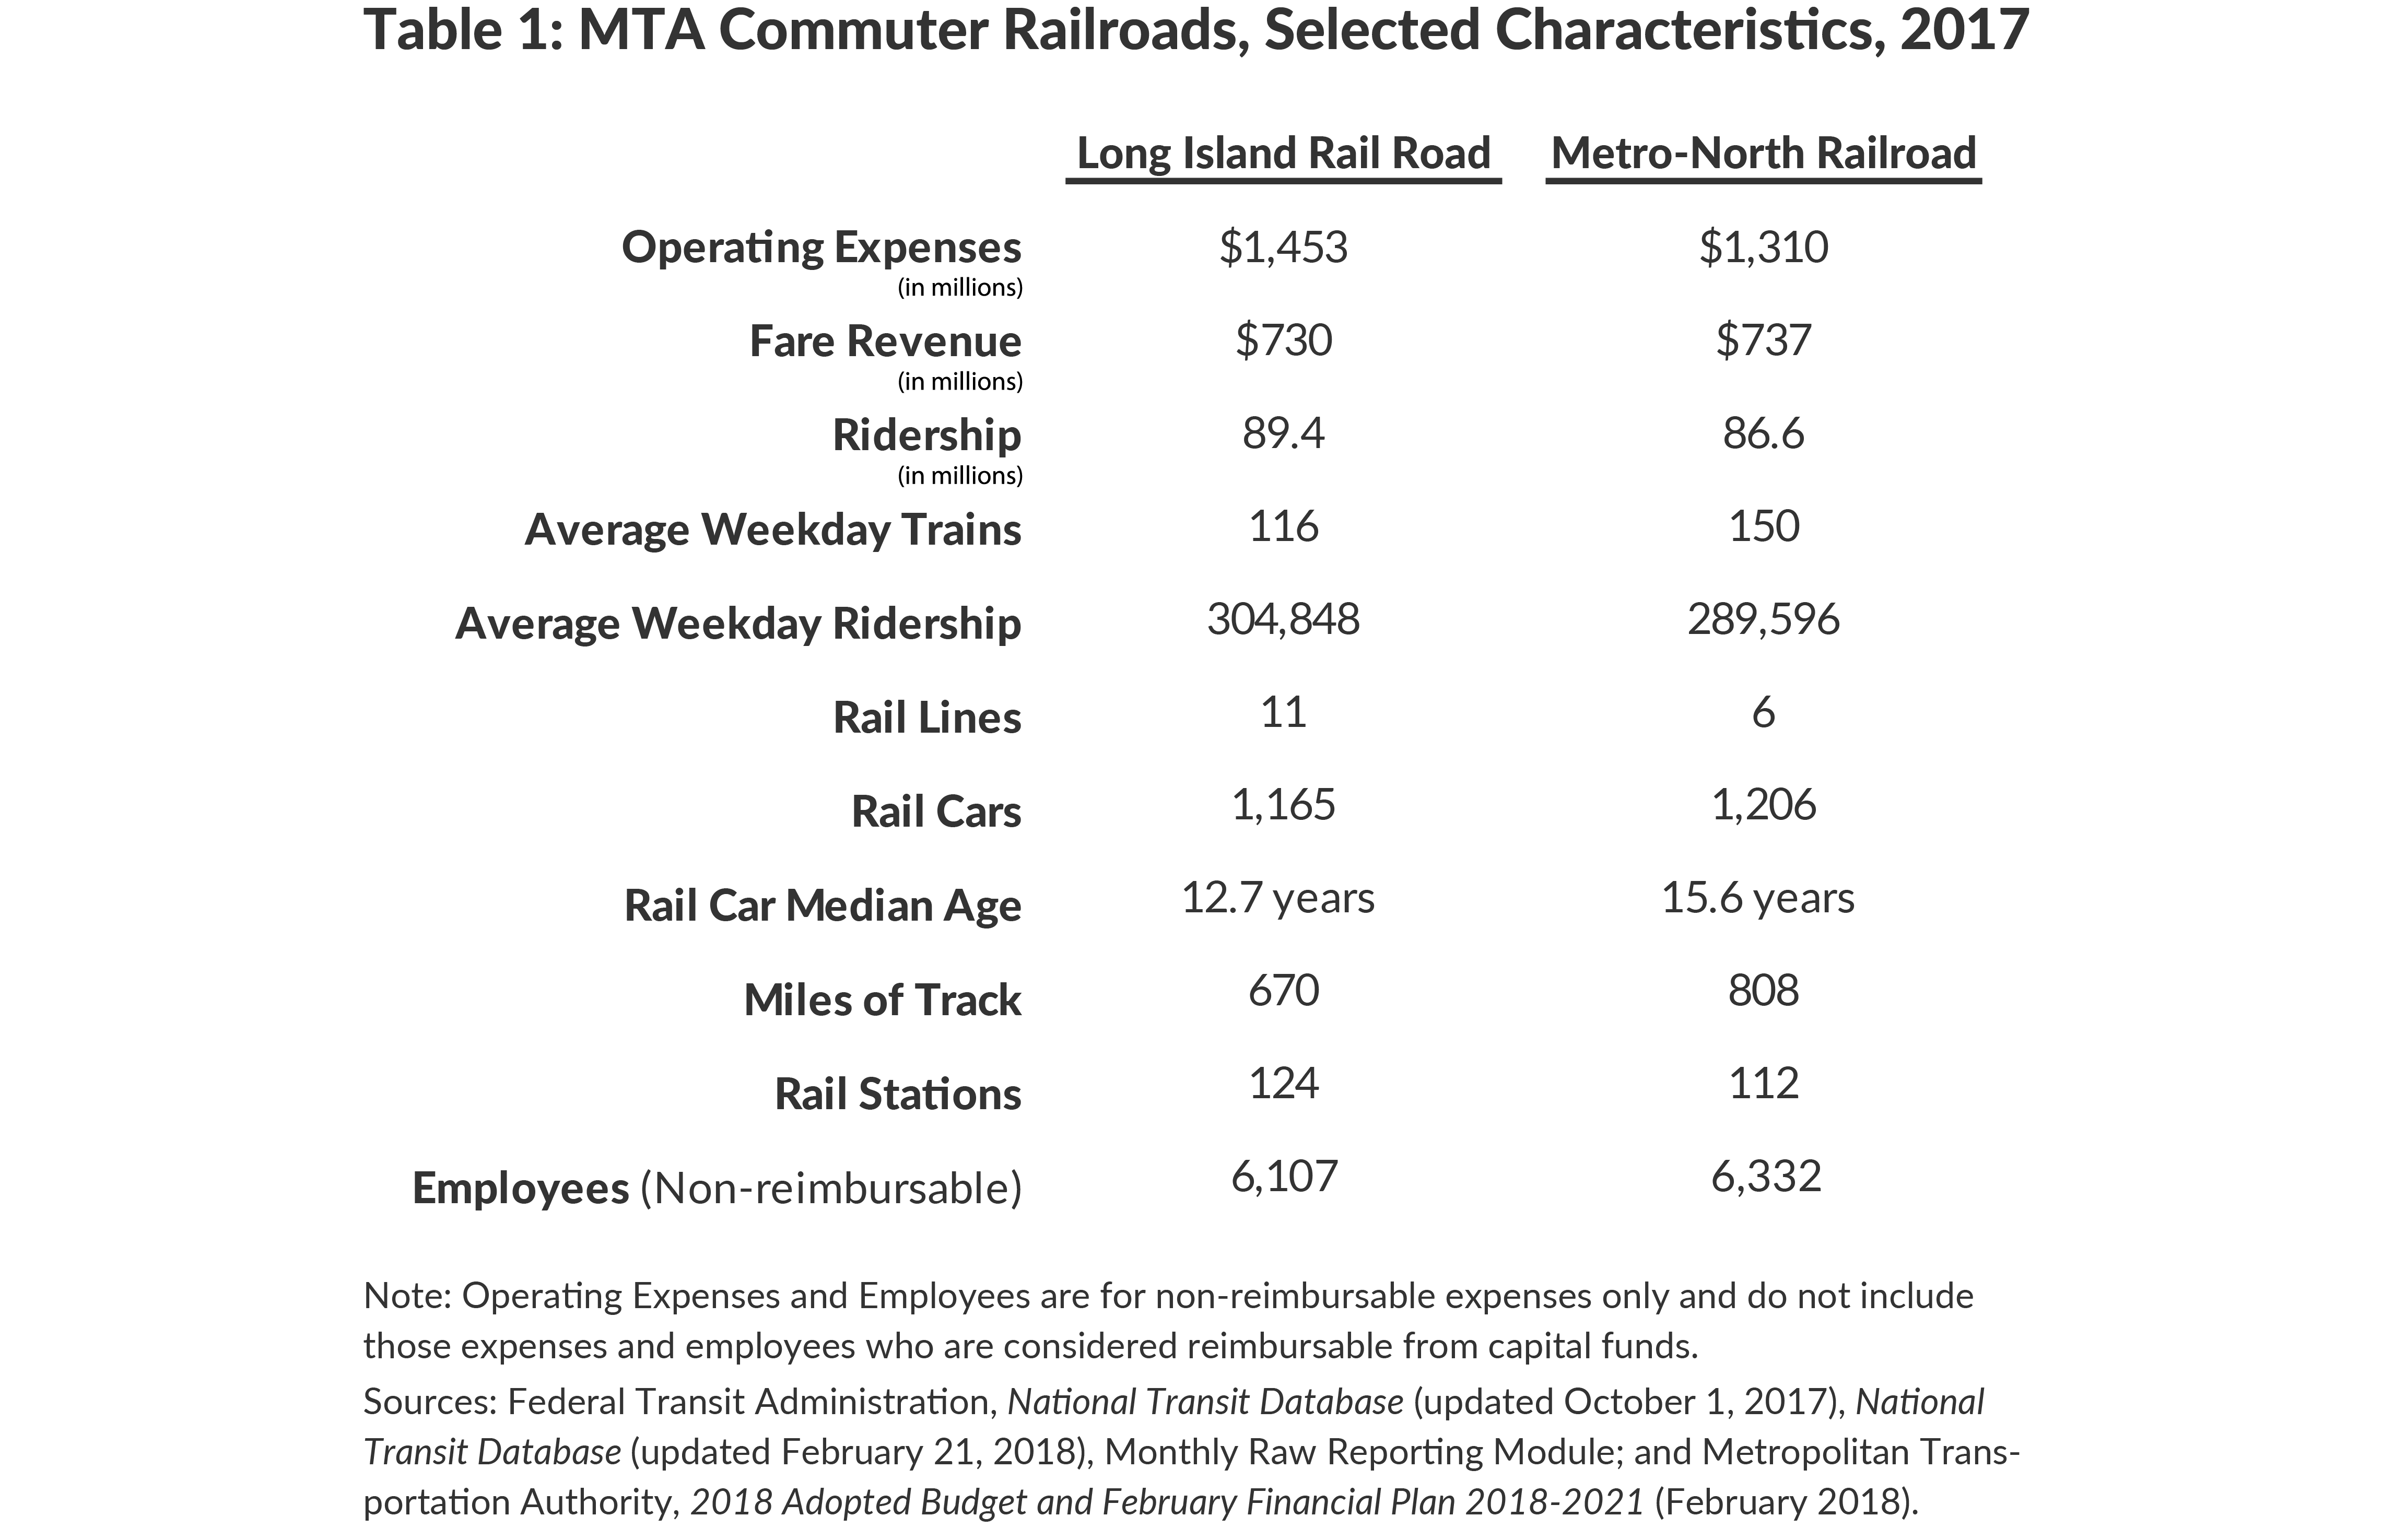 4 Things You Should Know About the MTA's Commuter Railroads